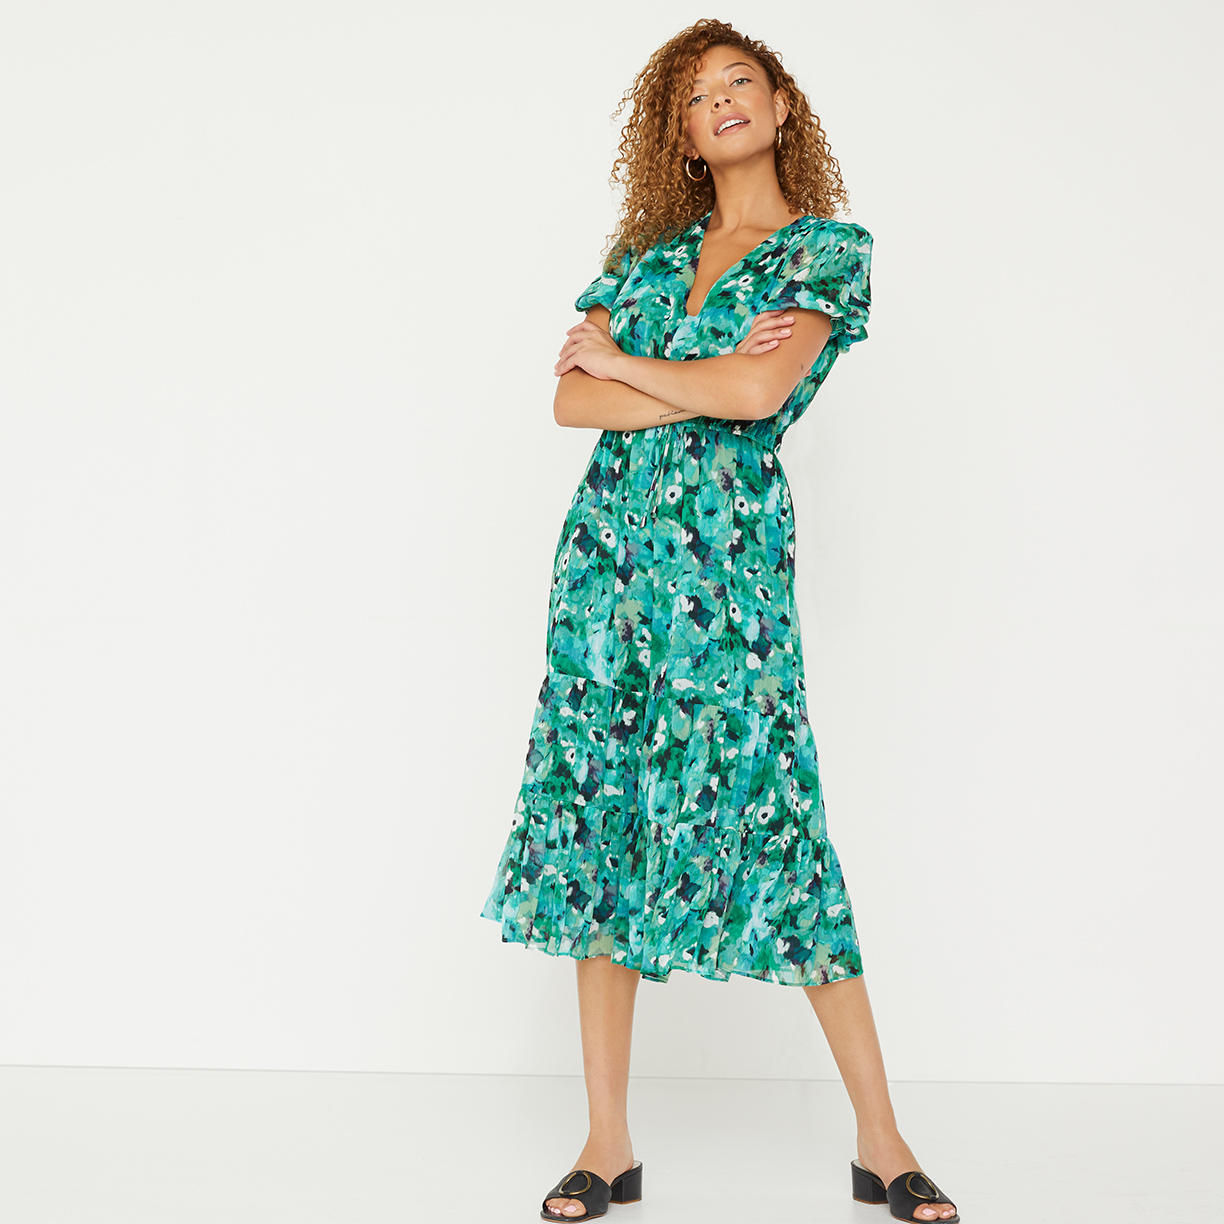 Maggy London & More Up to 65% Off